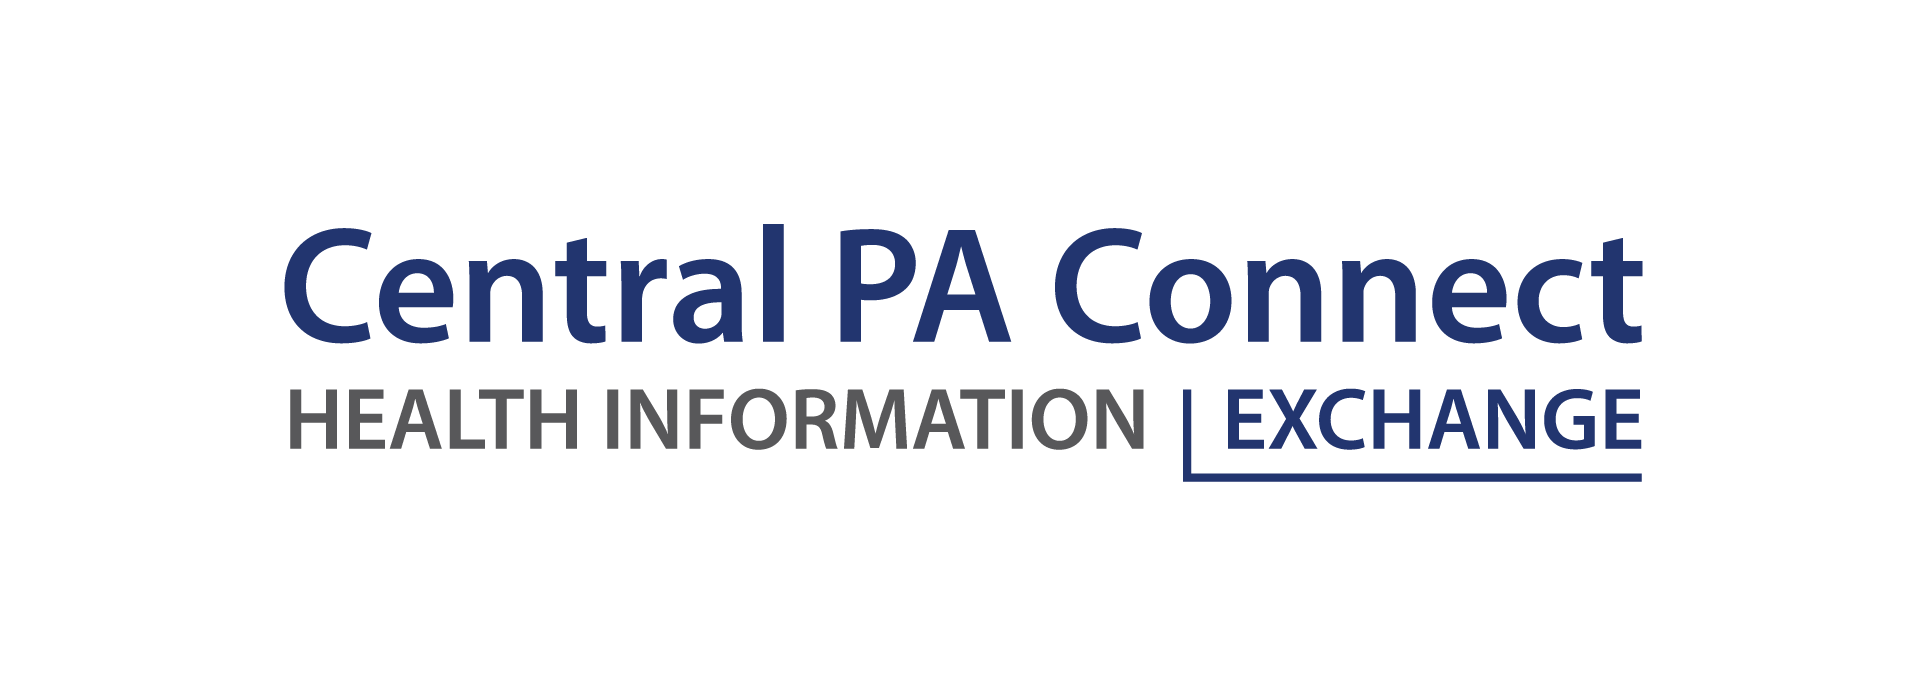 PA Connect Healthcare